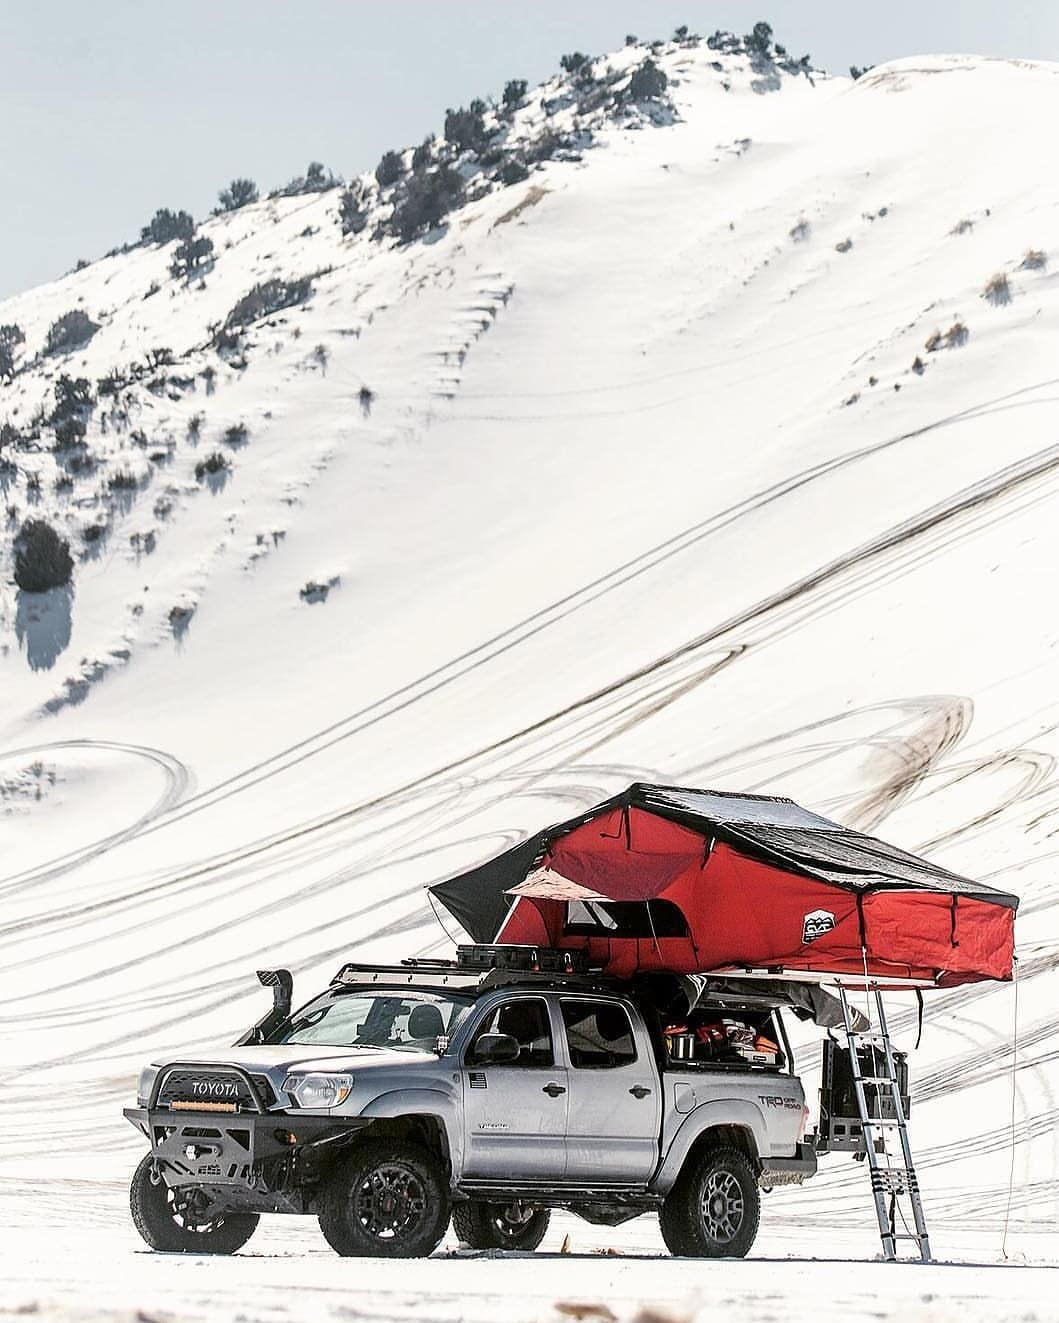 Insanely Awesome View Of The Snow Covered Sand Mountain In The Background With The Sick Rooftoptent And Rig Set U Tacoma Tent Overland Tacoma Overlanding